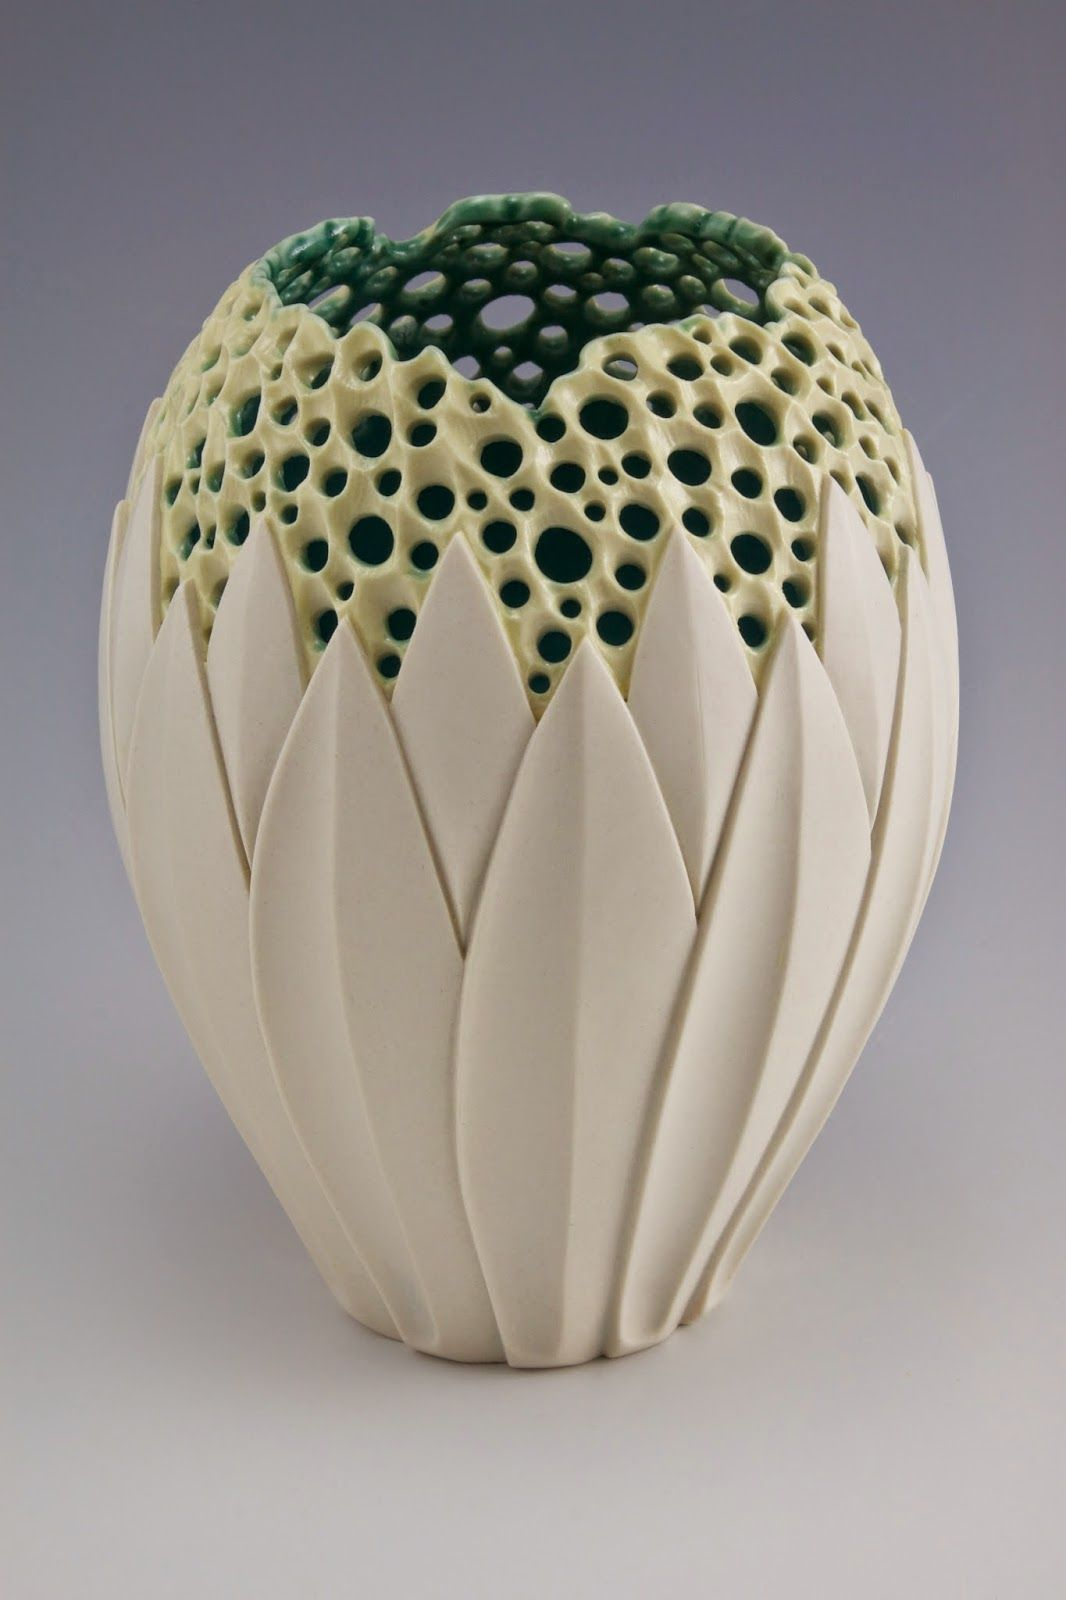 By simon van der ven via musing about mud products pinterest illuminated lotus vase by simon van der ven porcelain reviewsmspy